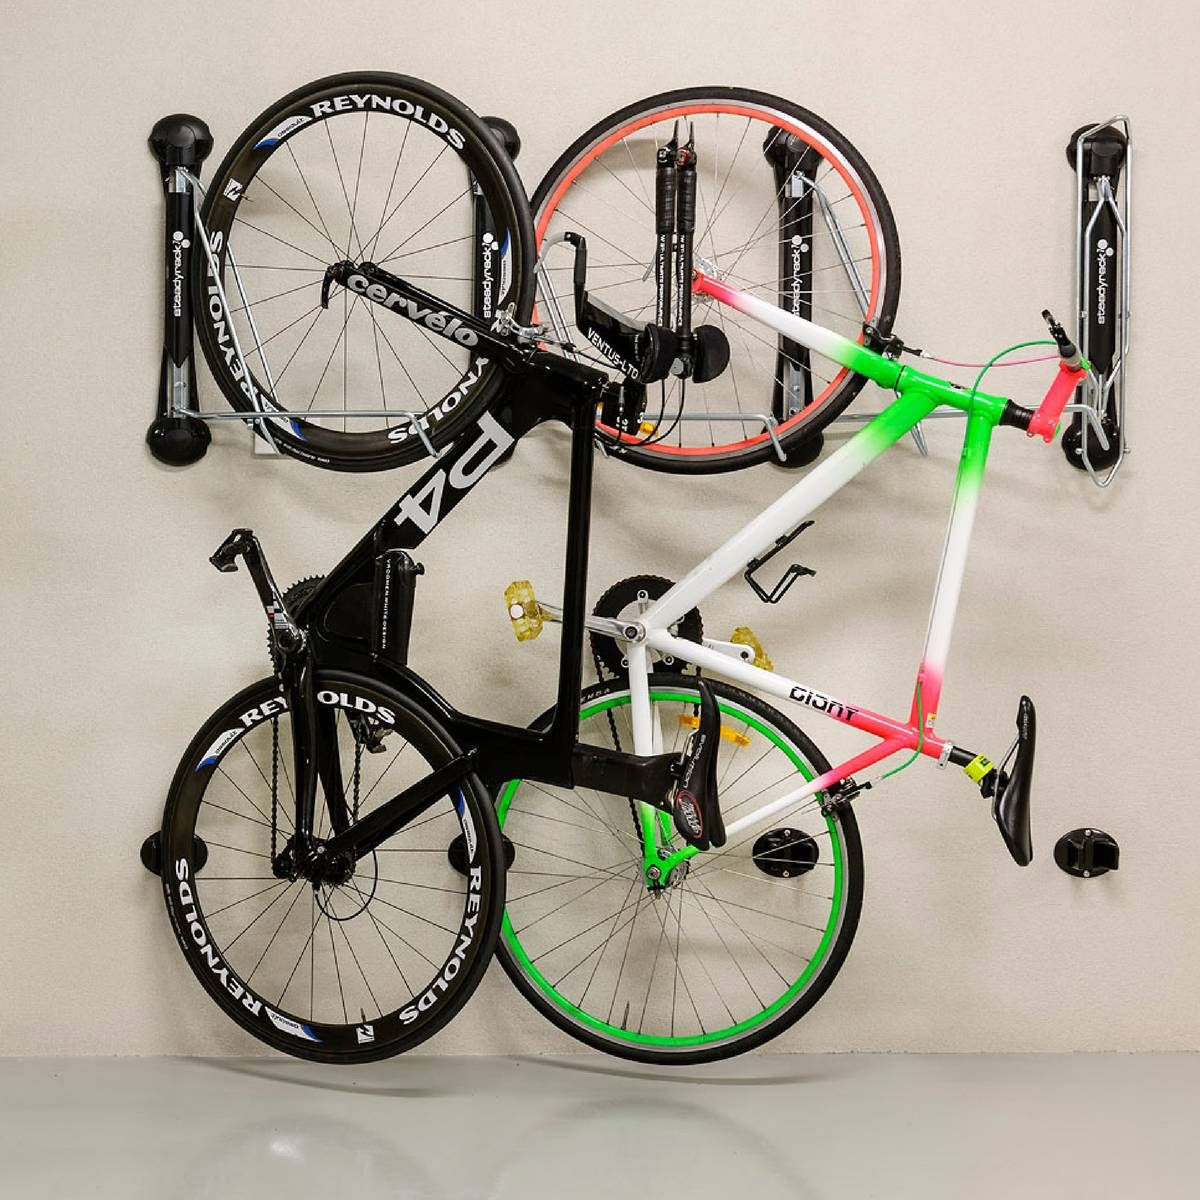 Parking Garage Bike Rack Classic Rack Carport Ideas Wall Mount Bike Rack Bicycle